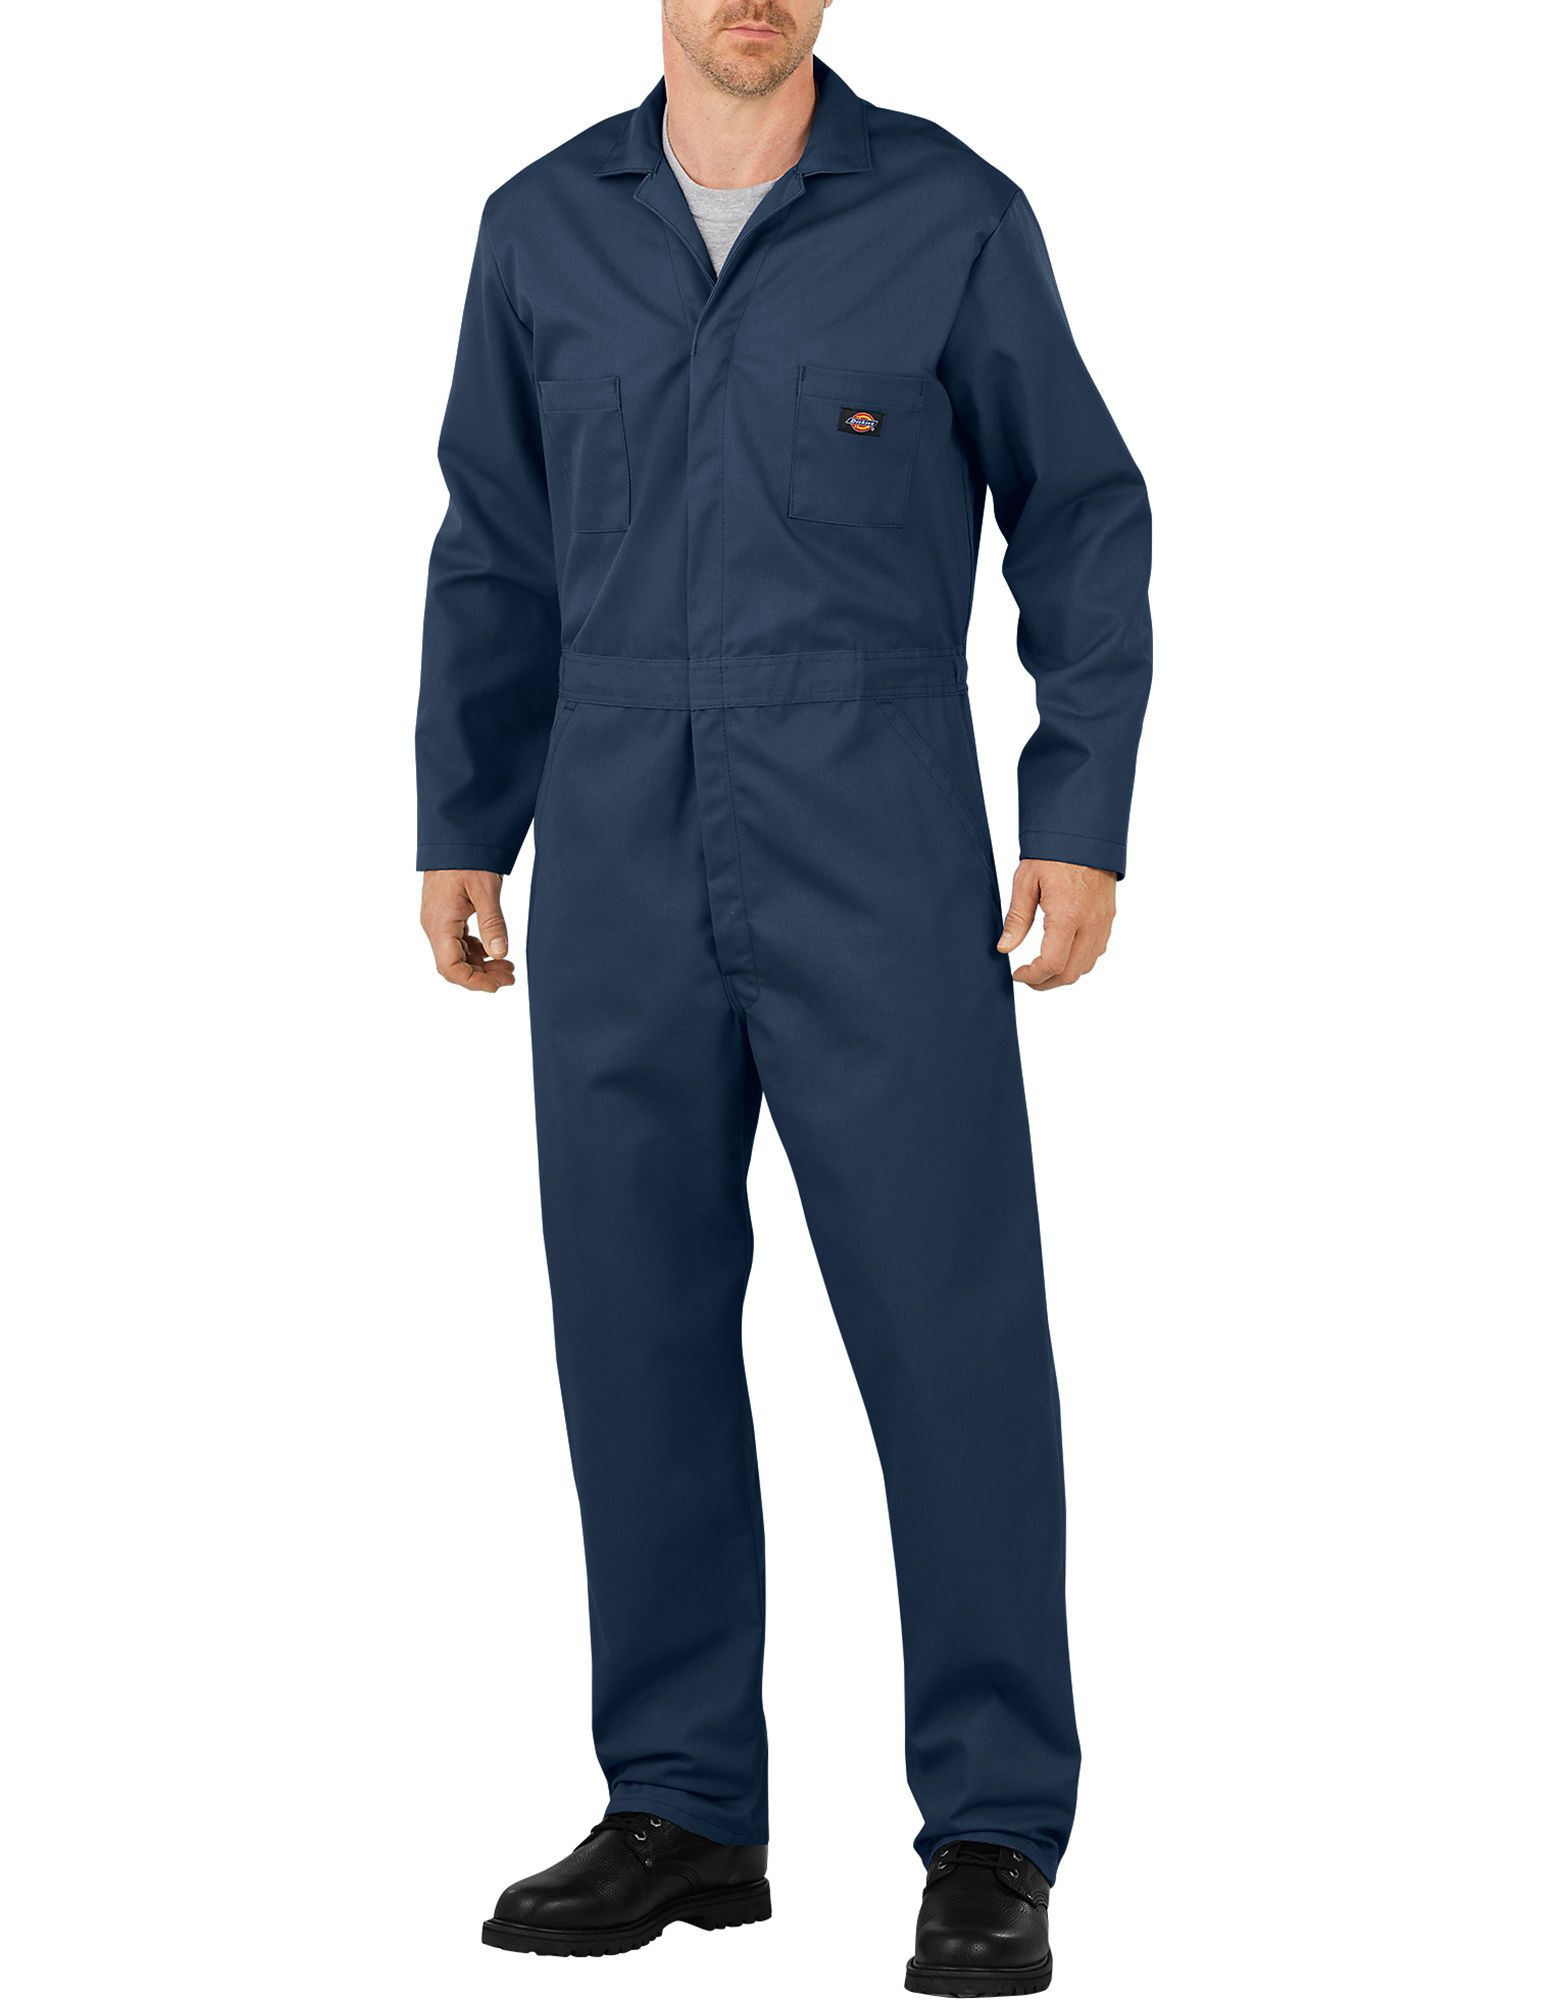 flex long sleeve coveralls dark navy mens coveralls on best insulated coveralls for men id=31892